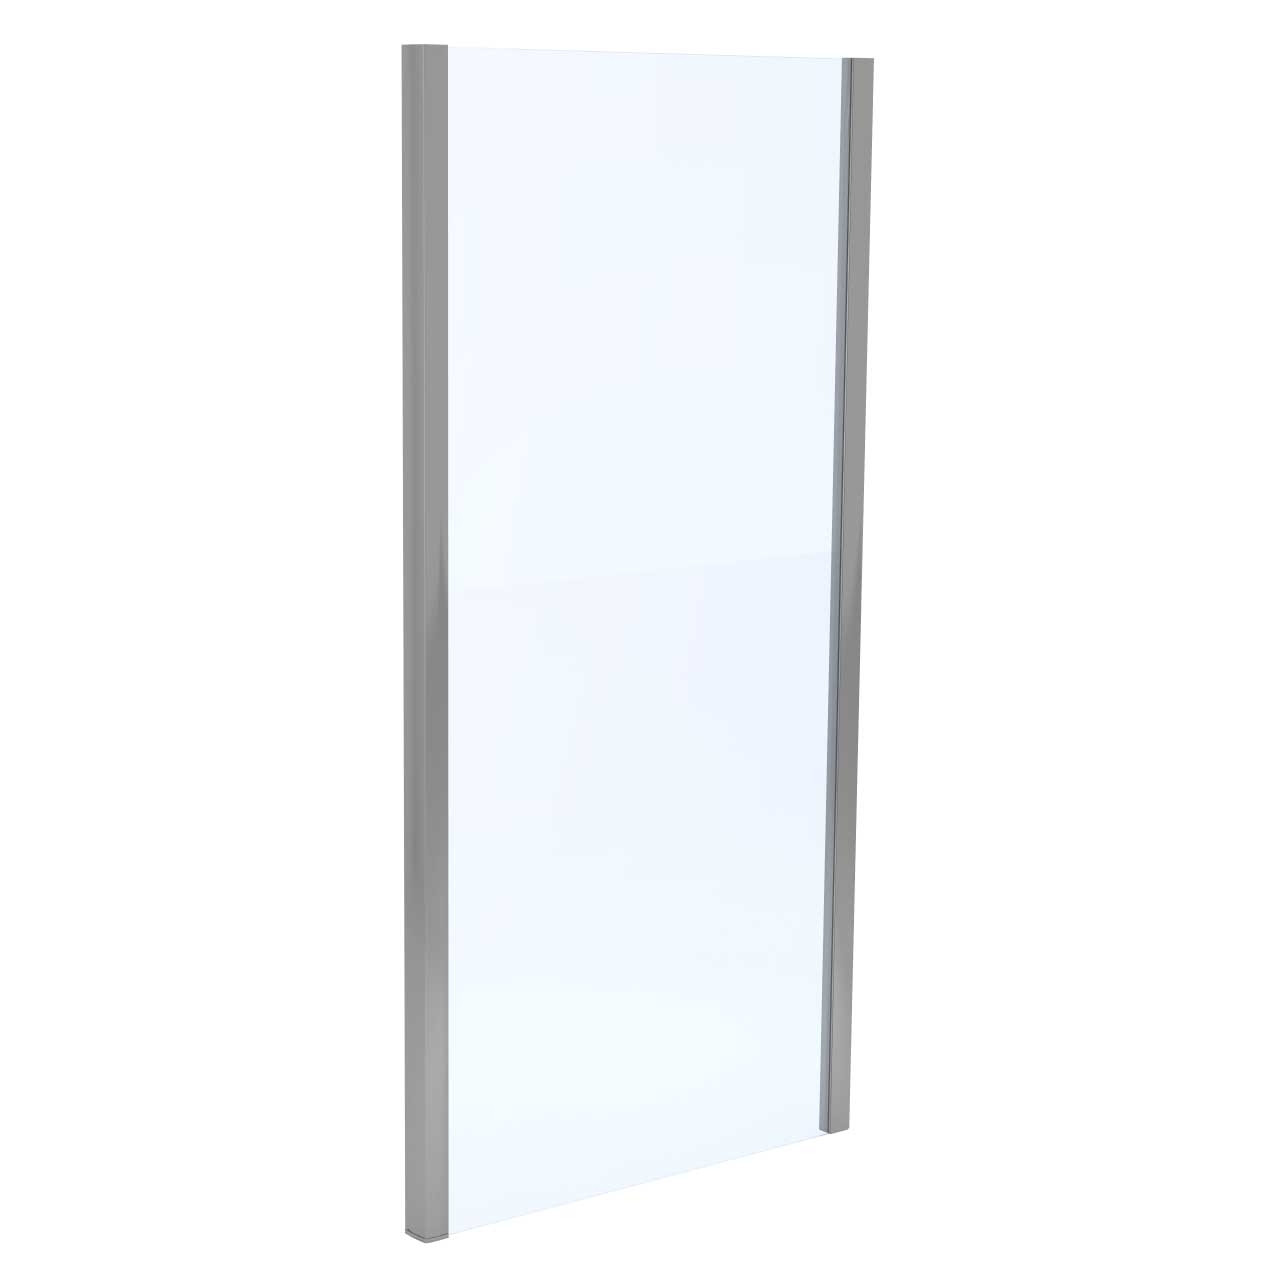 Series 6 1000 x 900 Sliding Door Enclosure